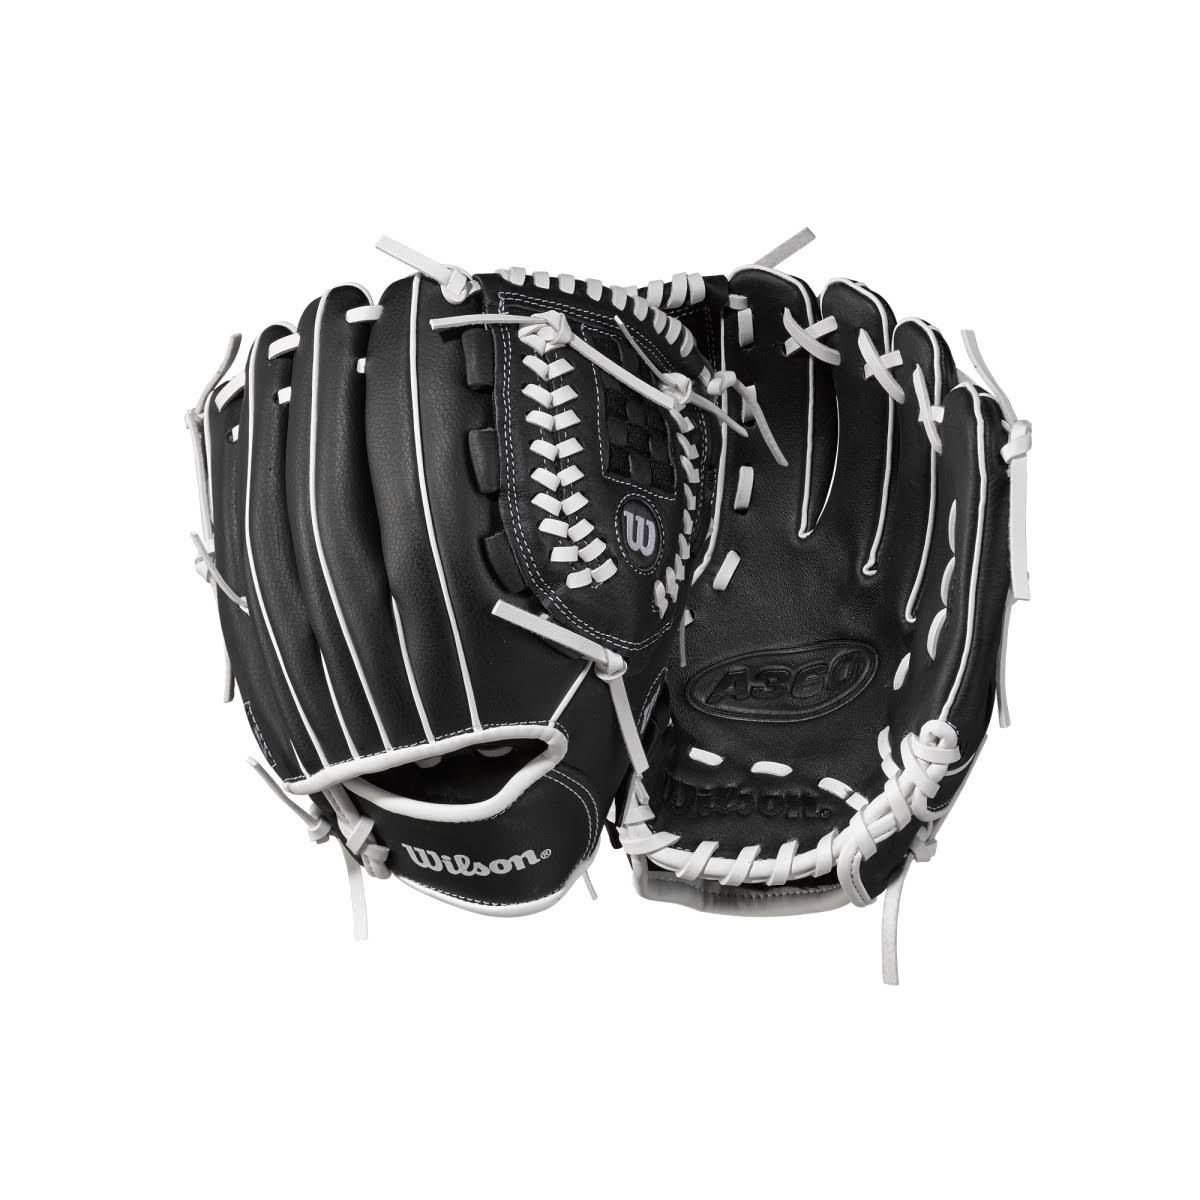 Wilson A360 Series Youth Baseball Glove - 10""